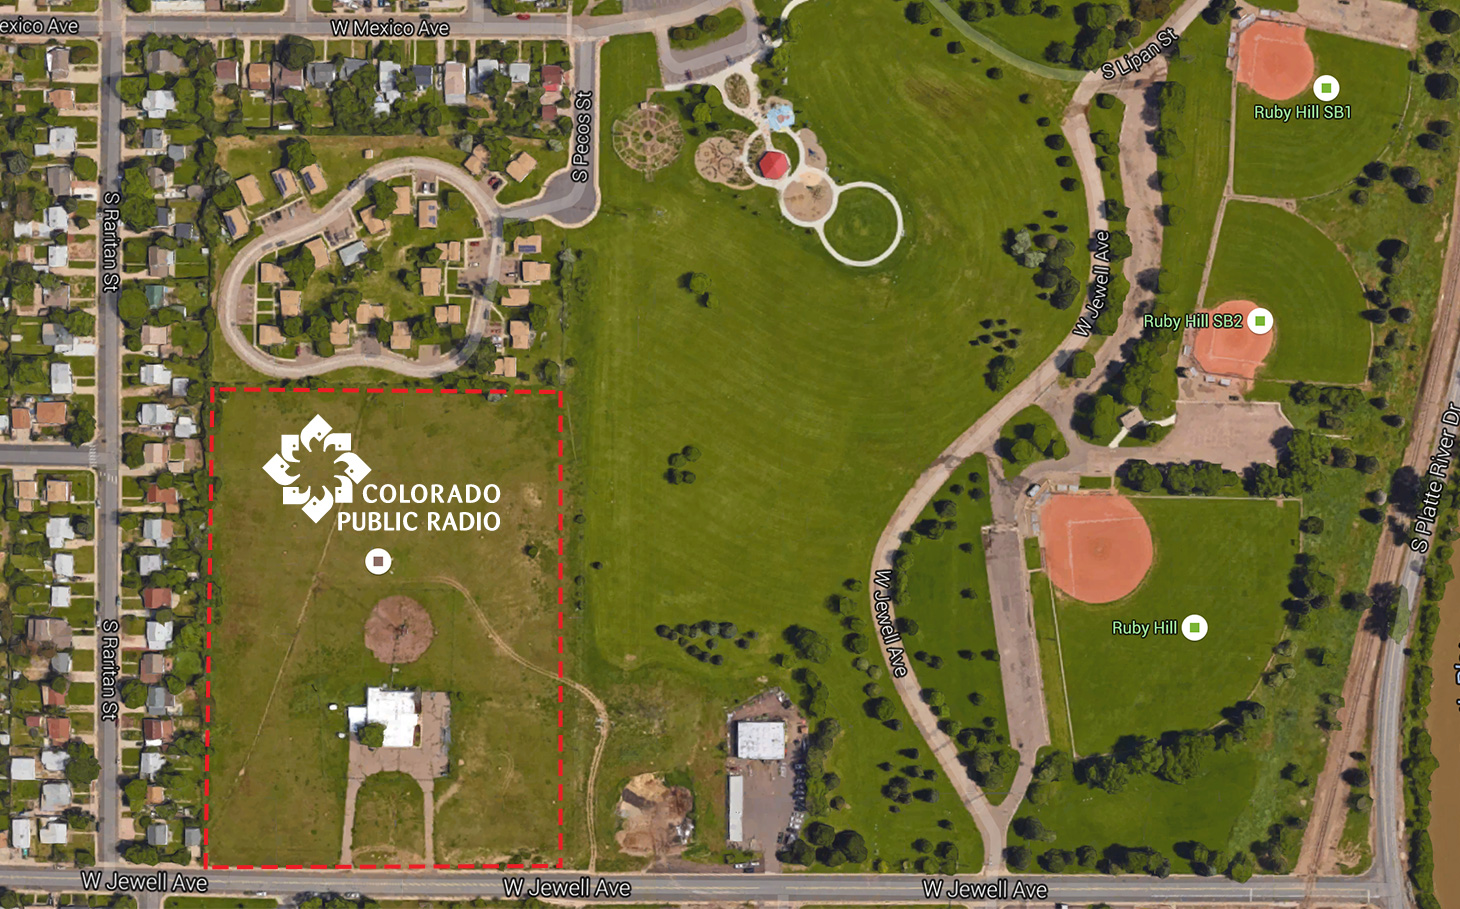 Map showing the location of the Colorado Public Radio owned land at Ruby Hill Park